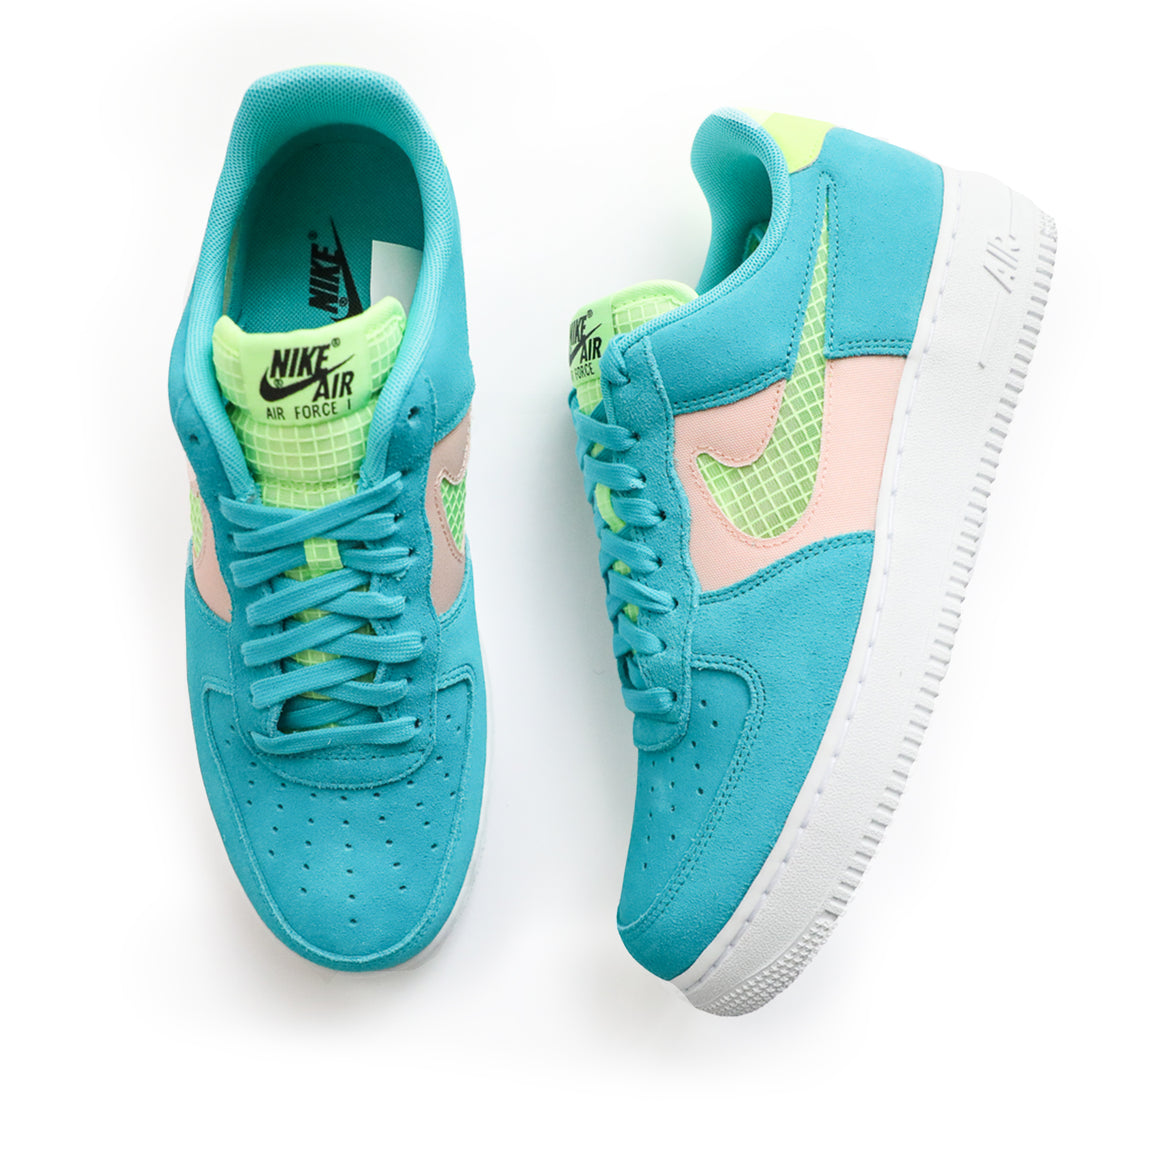 Nike Air Force 1 '07 (Oracle Aqua/Ghost Green) - Nike Air Force 1 '07 (Oracle Aqua/Ghost Green) -